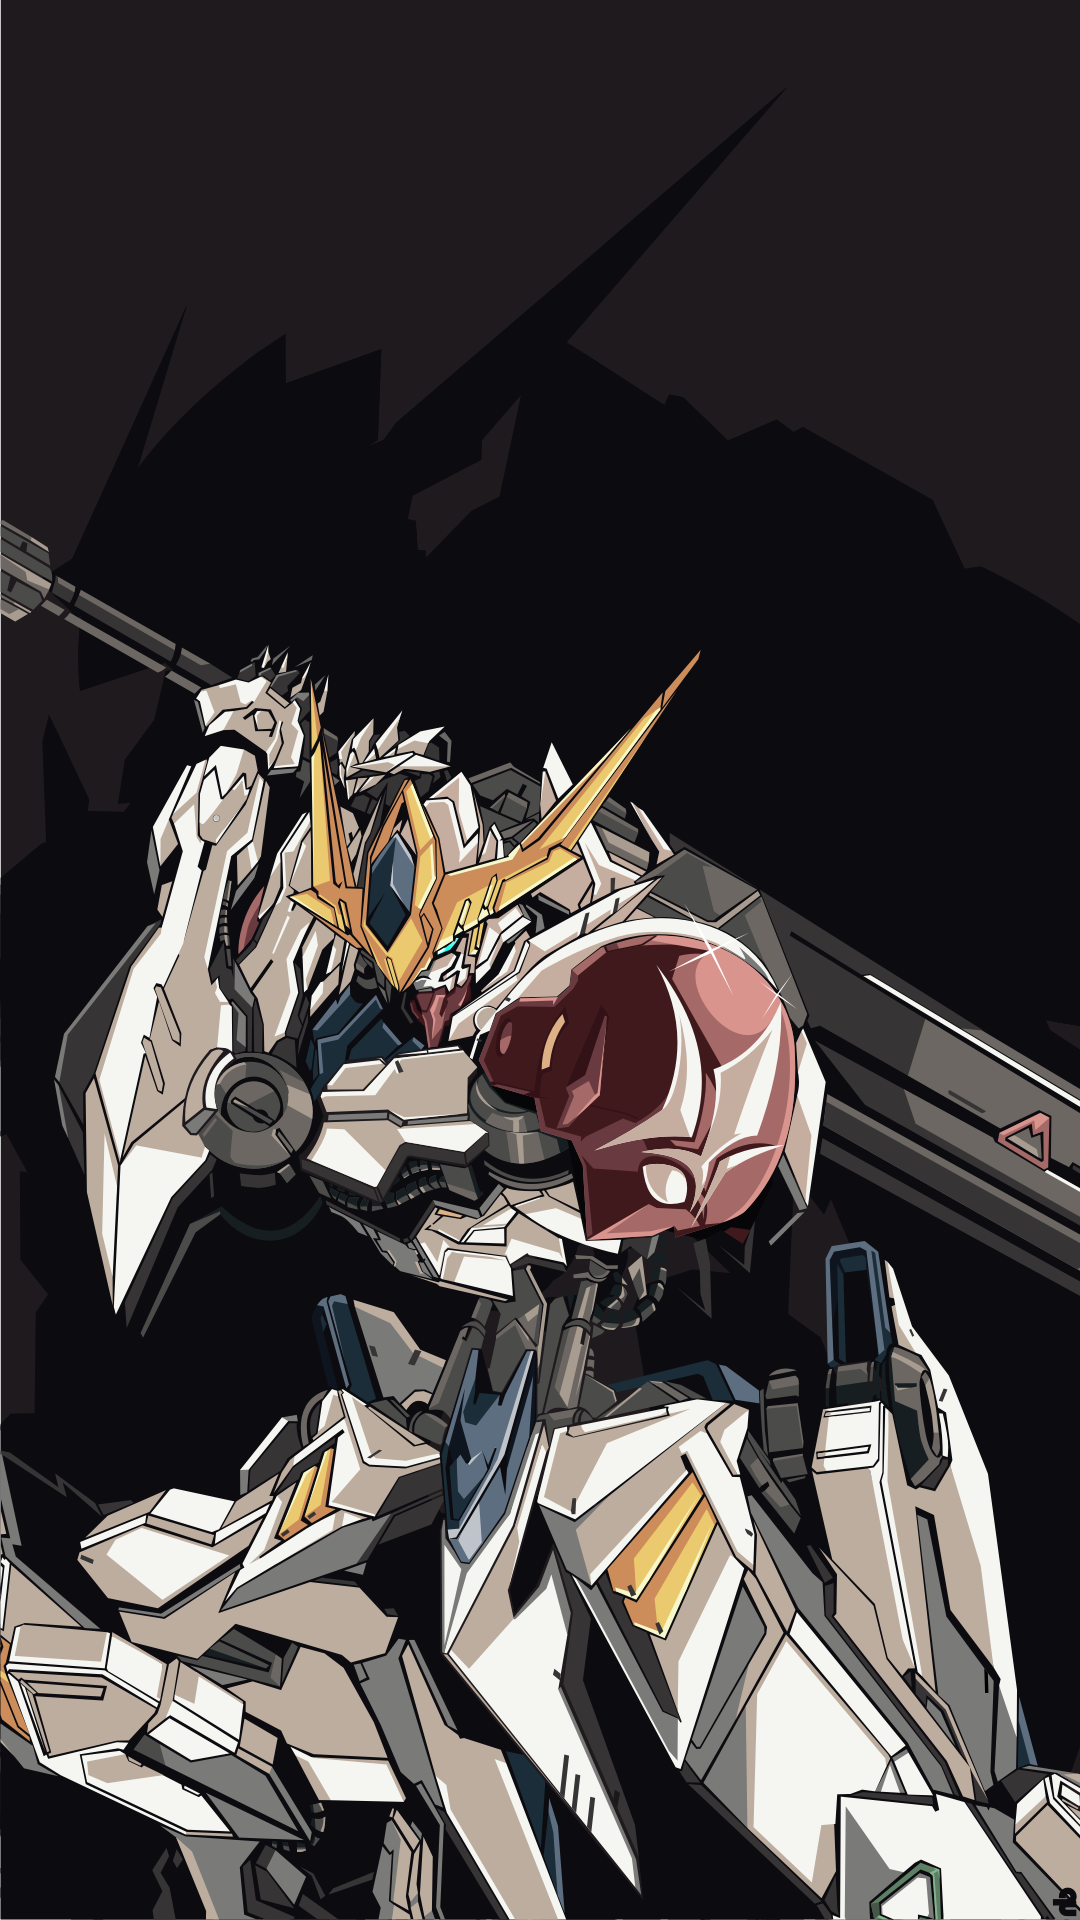 Anime Mobile Suit Gundam Iron Blooded Orphans 1080x1920